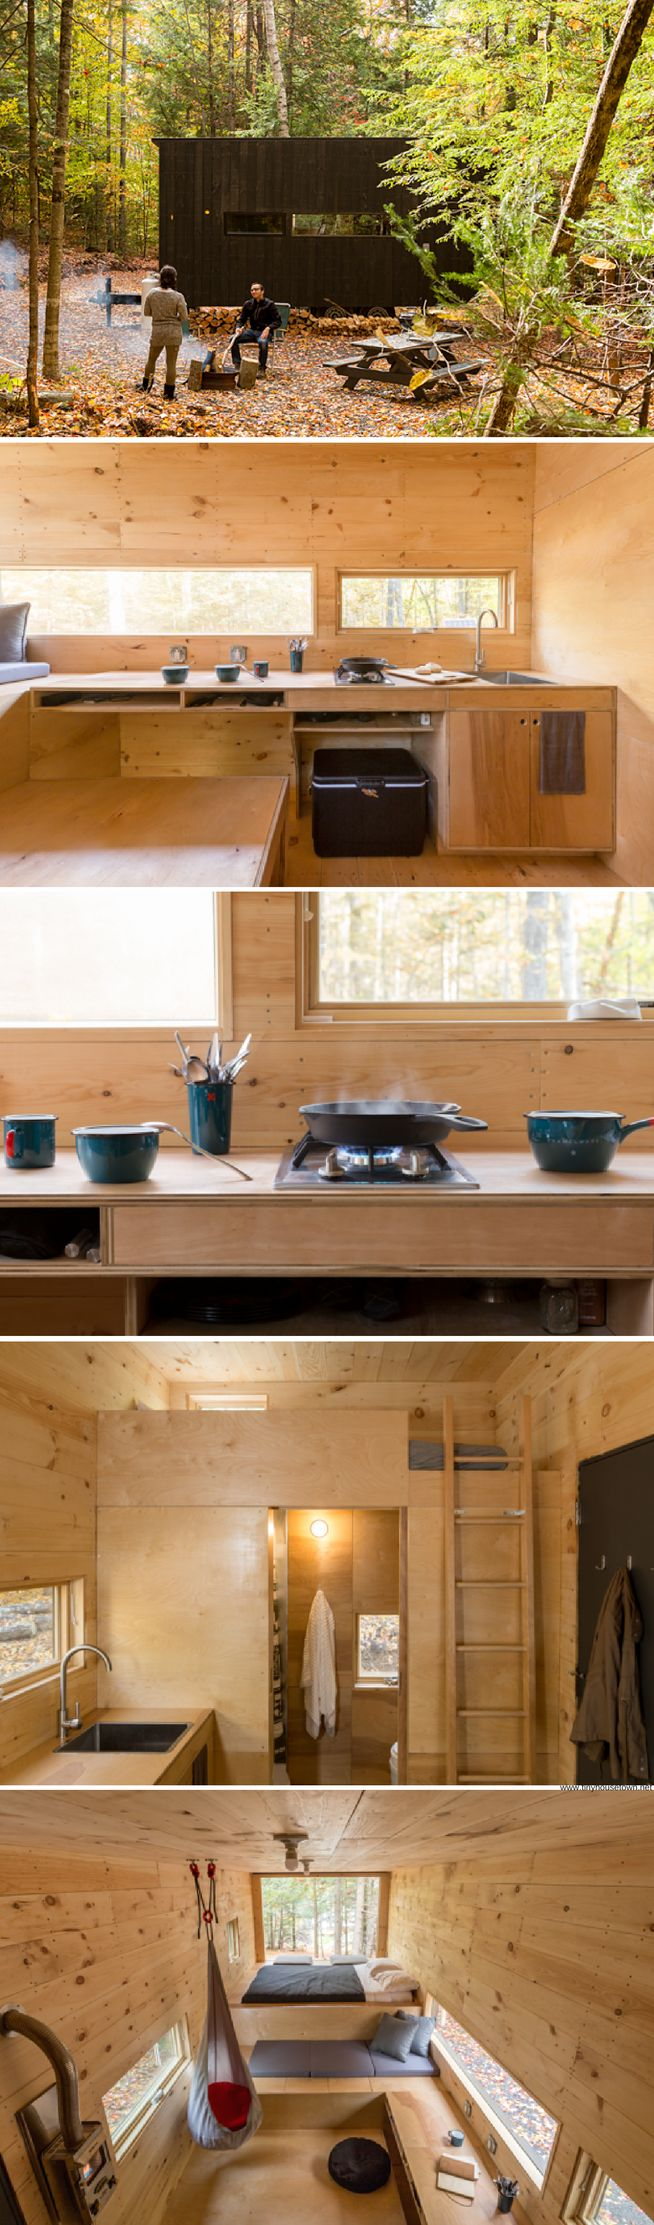 Clara: 160 sq ft tiny house retreat you can rent in a secluded spot just outside of Boston